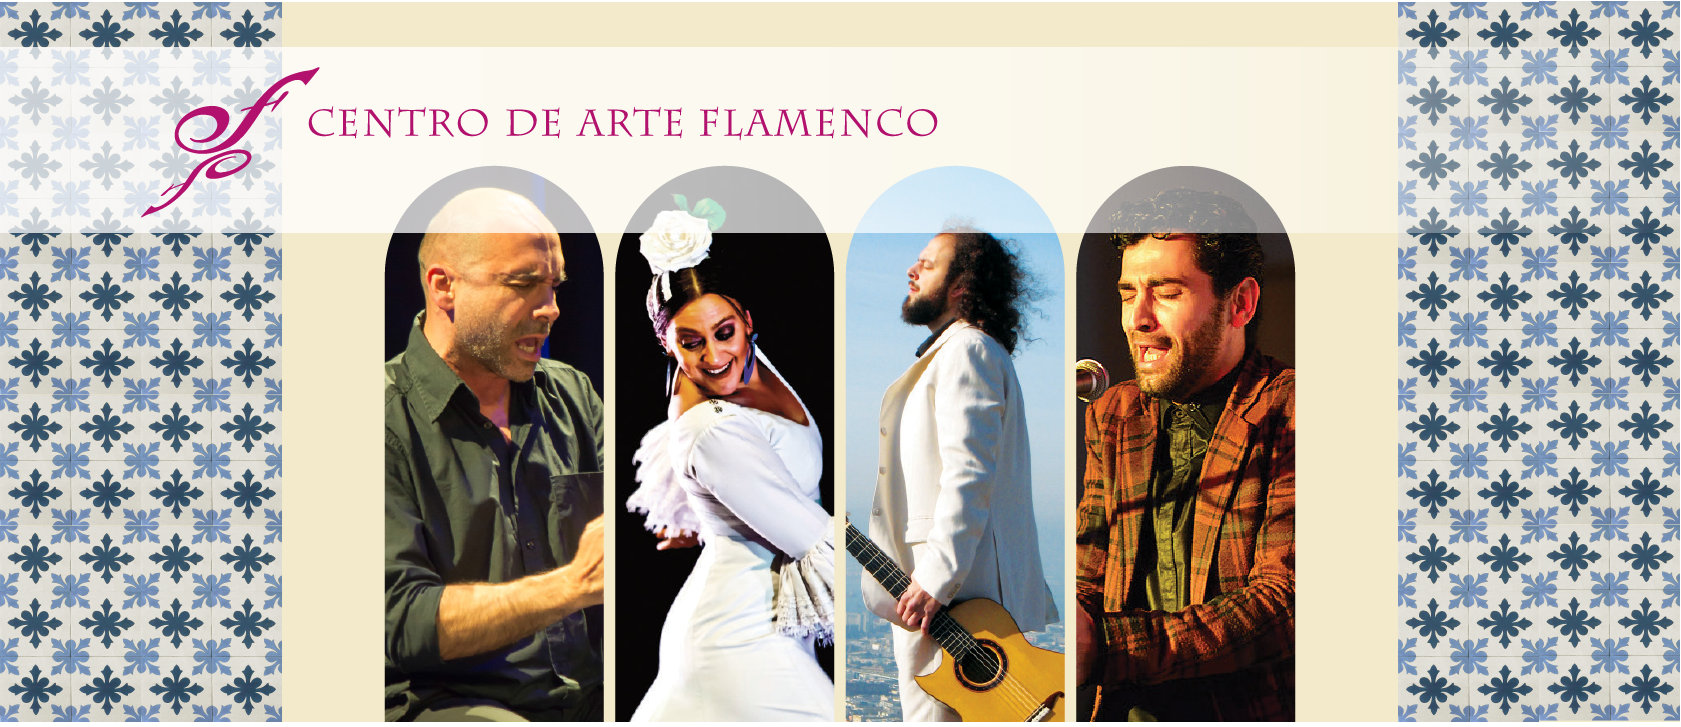 Tablao Flamenco: 6 April 2017